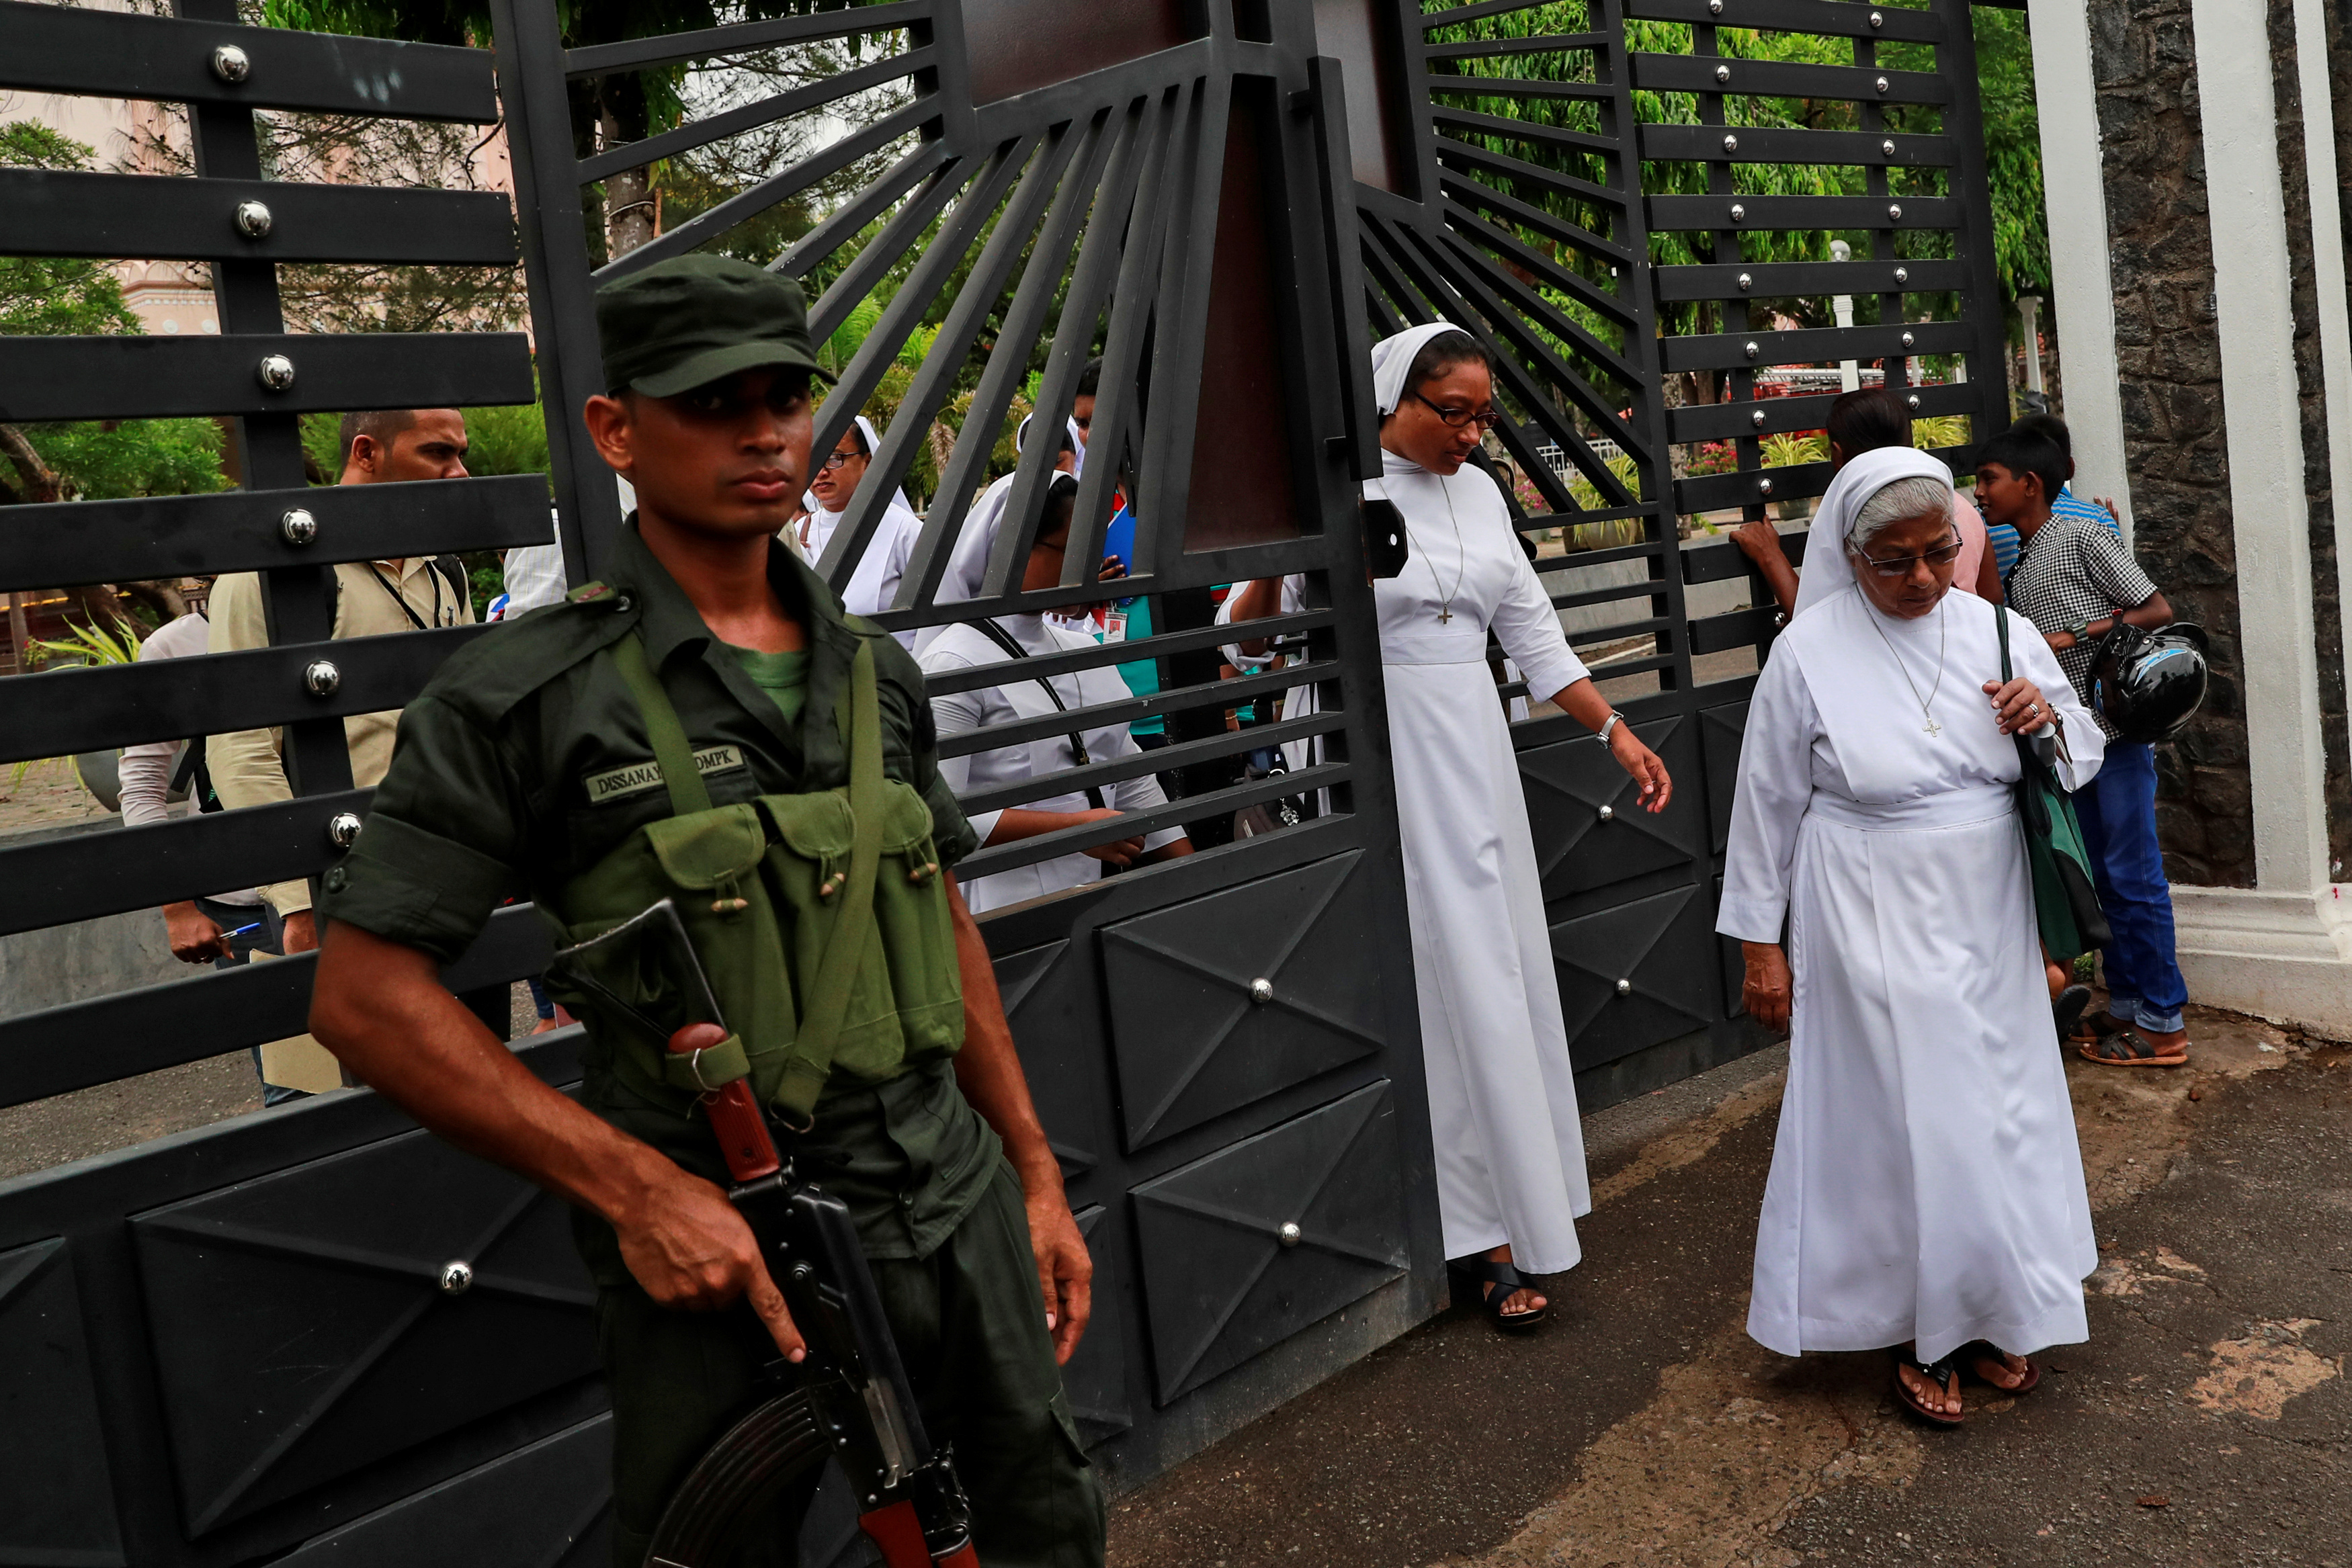 A soldier keeps guard as nuns walk out of St. Sebastian Church in Negombo, Sri Lanka, April 30, 2019. REUTERS/Danish Siddiqui